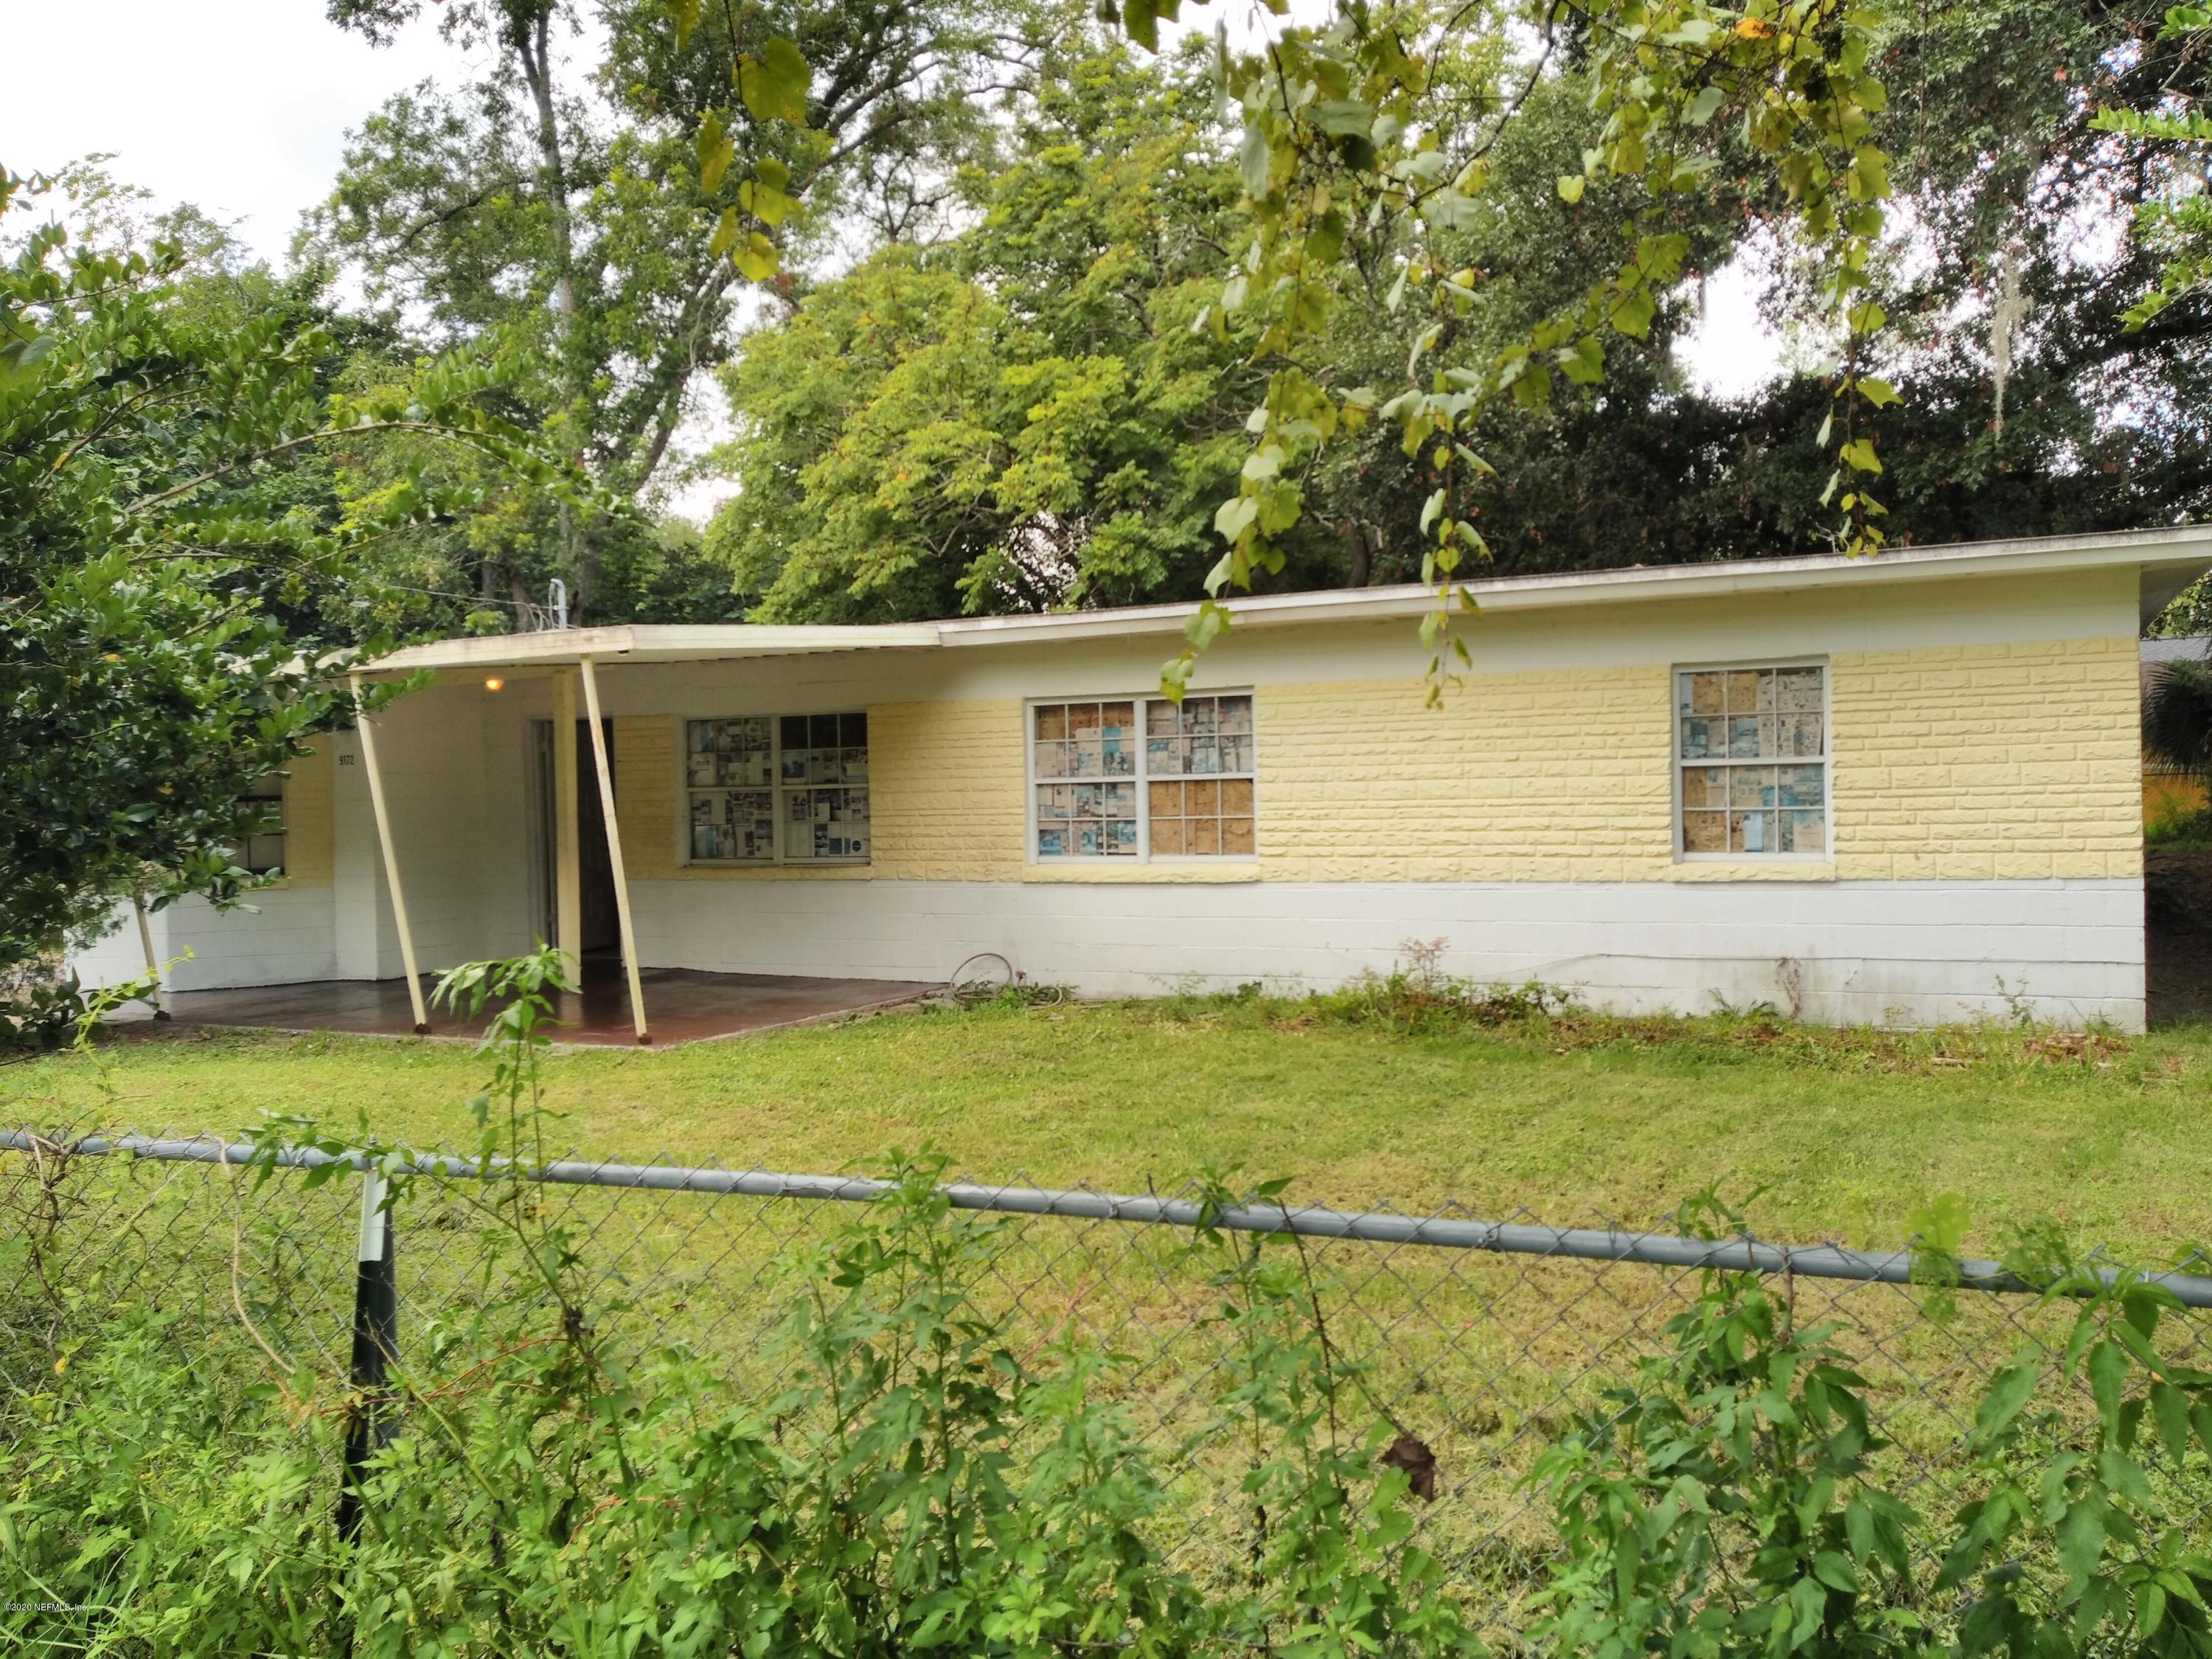 9172 11TH, JACKSONVILLE, FLORIDA 32208, 3 Bedrooms Bedrooms, ,1 BathroomBathrooms,Residential,For sale,11TH,1040639